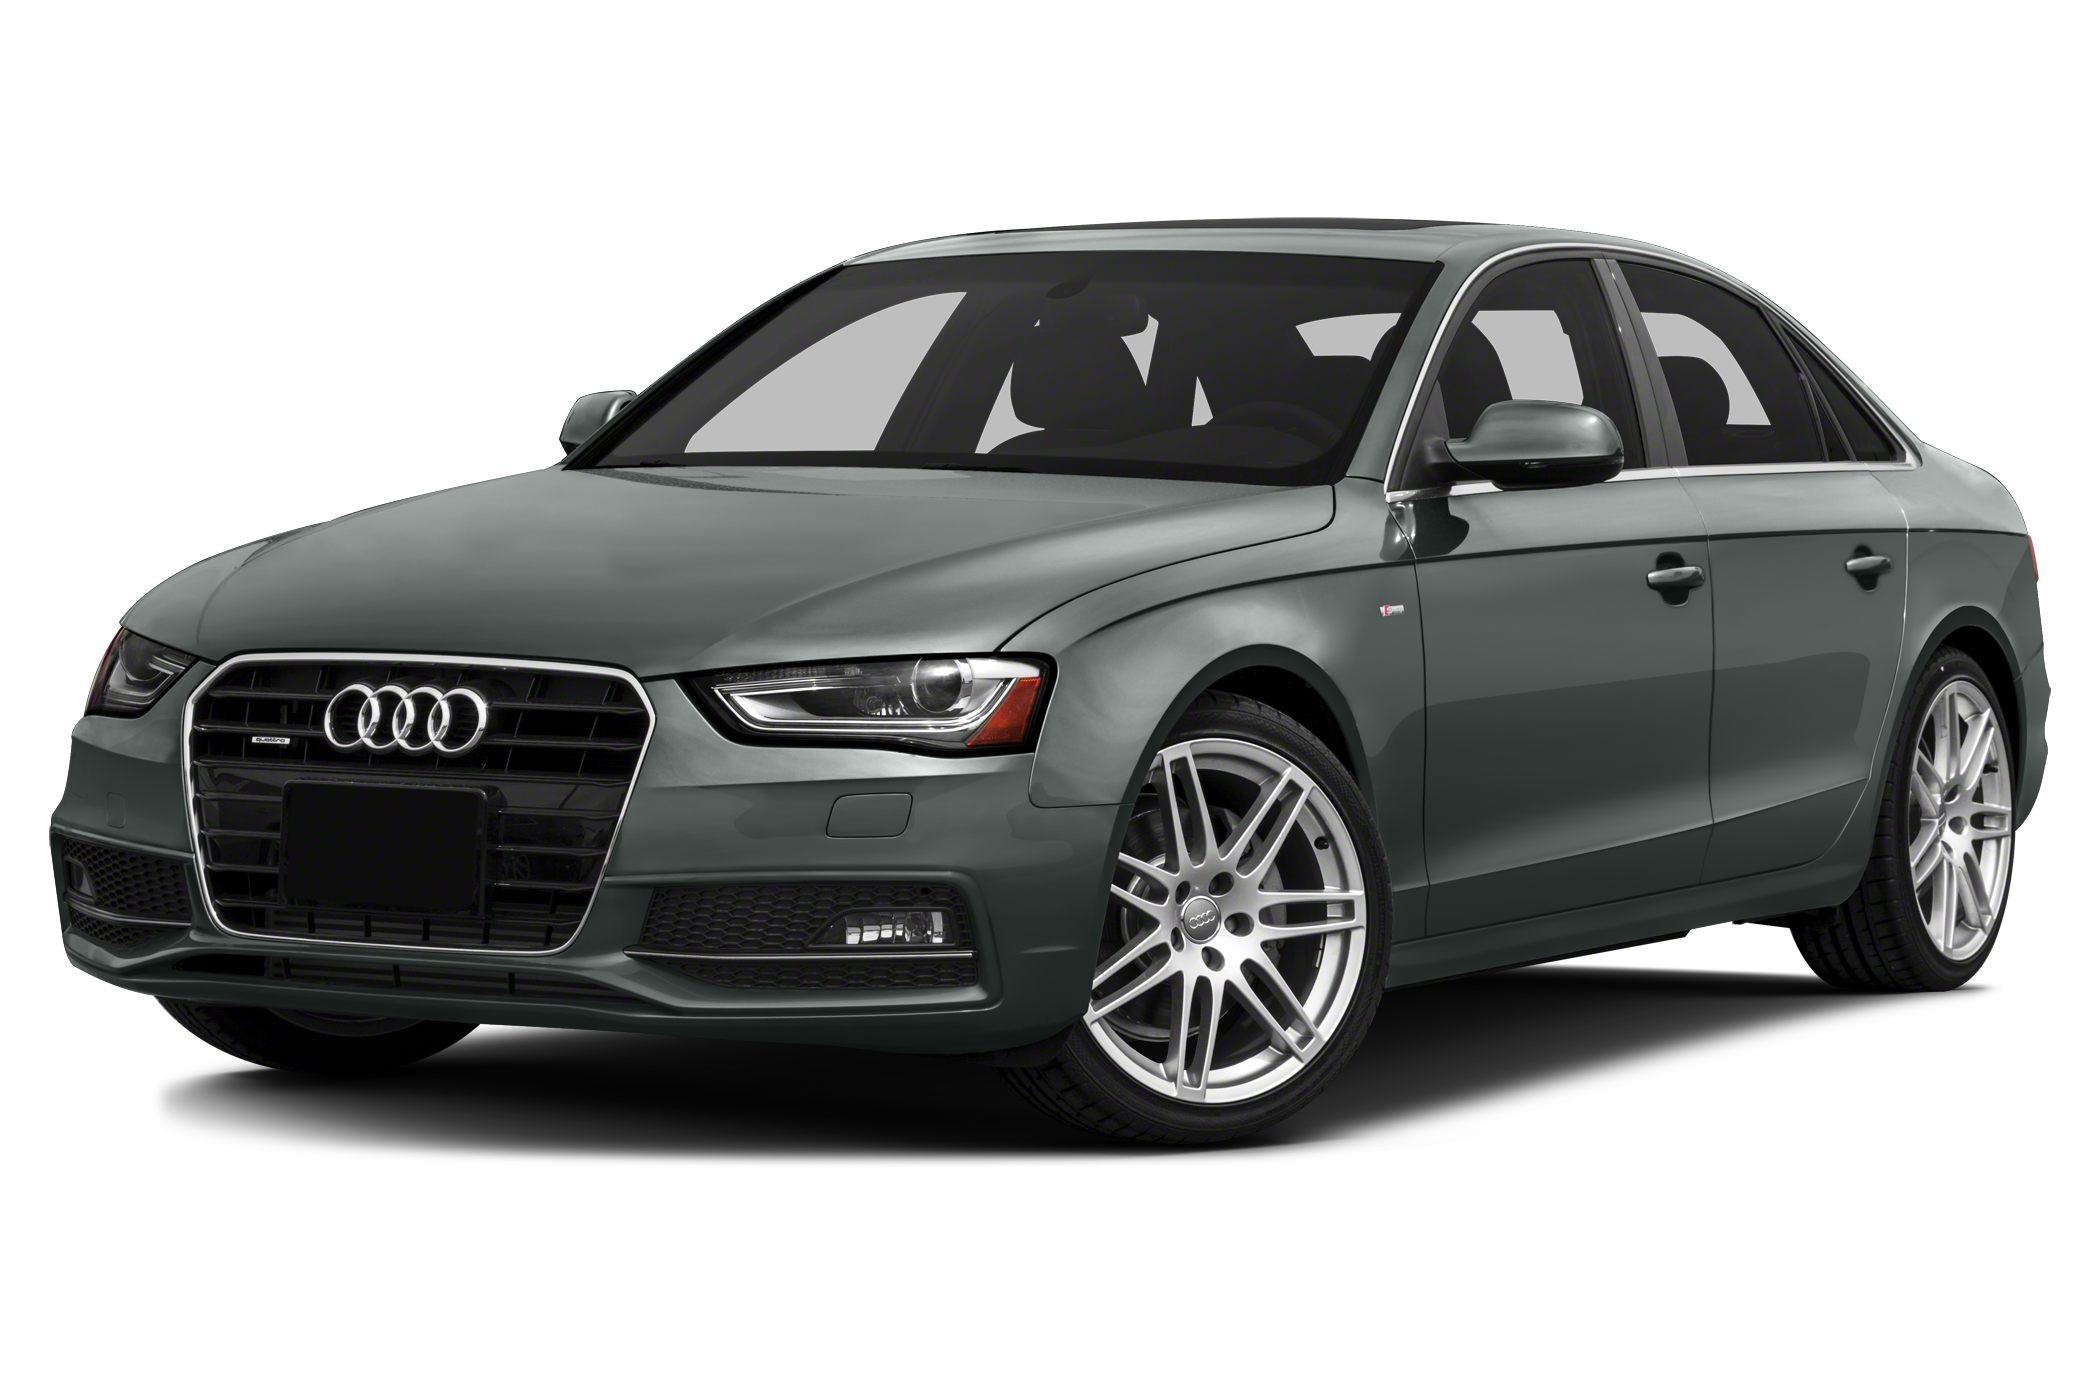 2013 audi a4 safety features